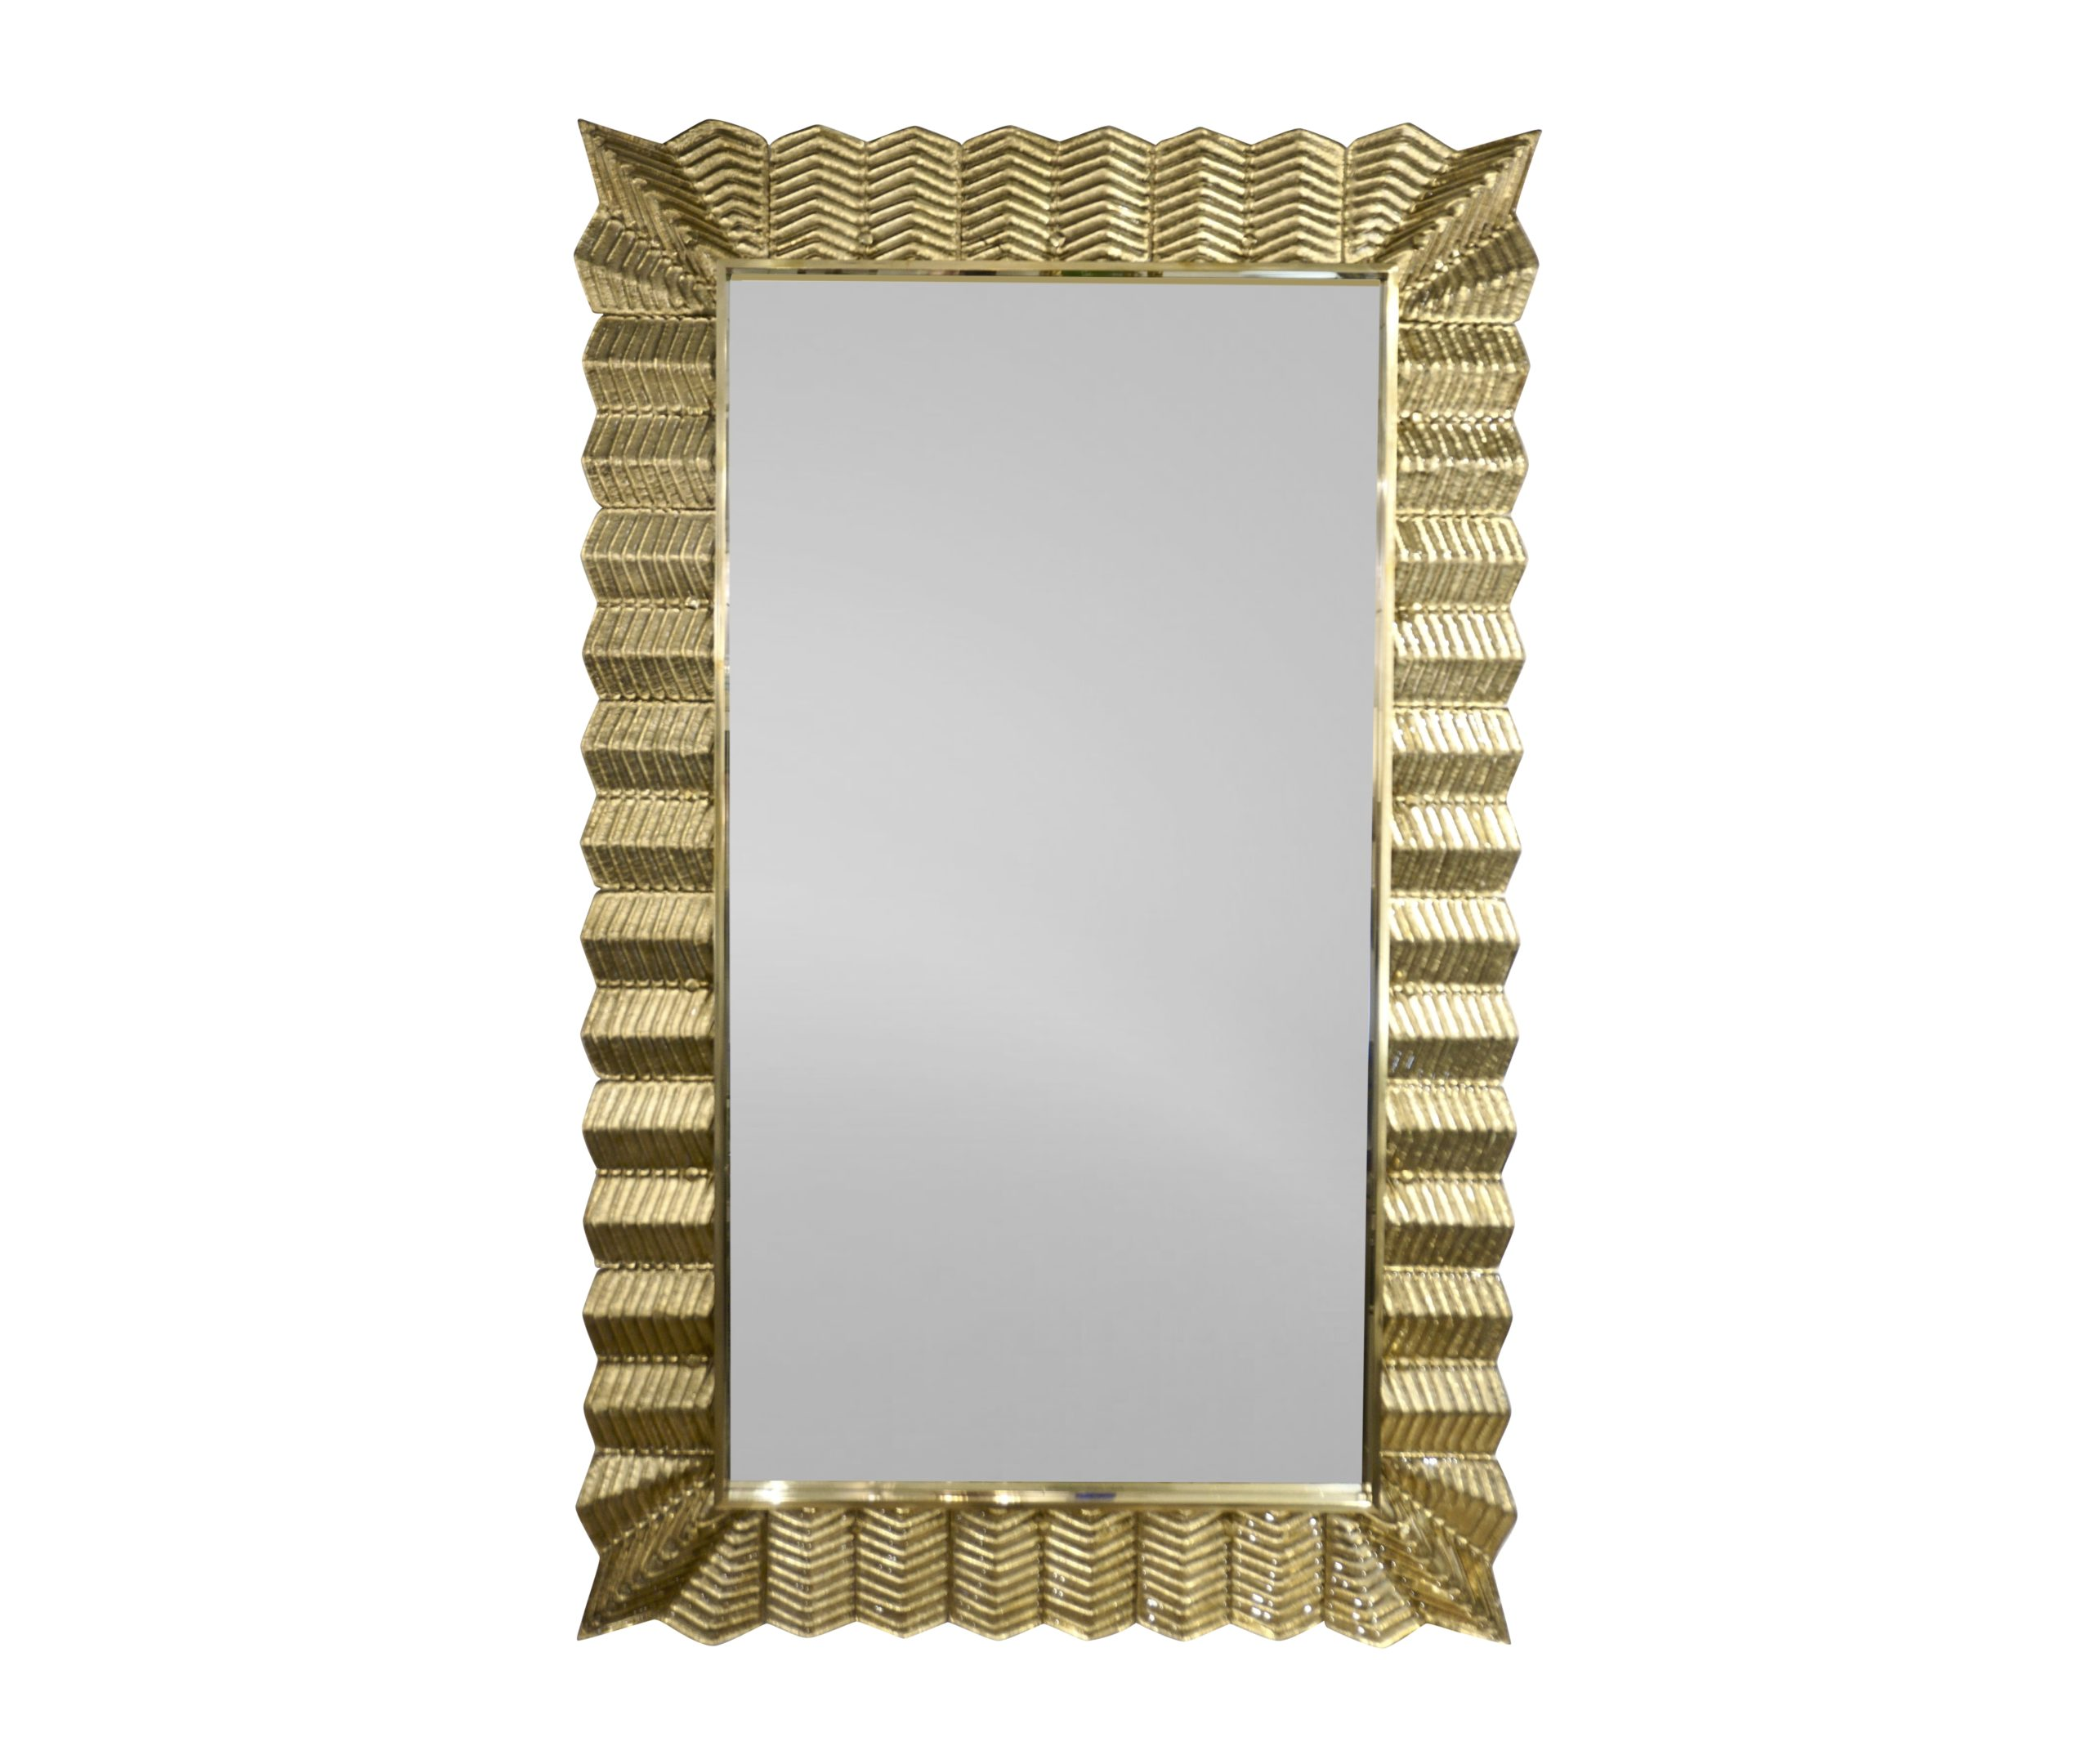 cosulich_interiors_and_antiques_products_new_york_design_Bespoke-Italian-Art-Deco-Design-Ruffled-Gold-Murano-Glass-Brass-Mirror_main-scaled-1